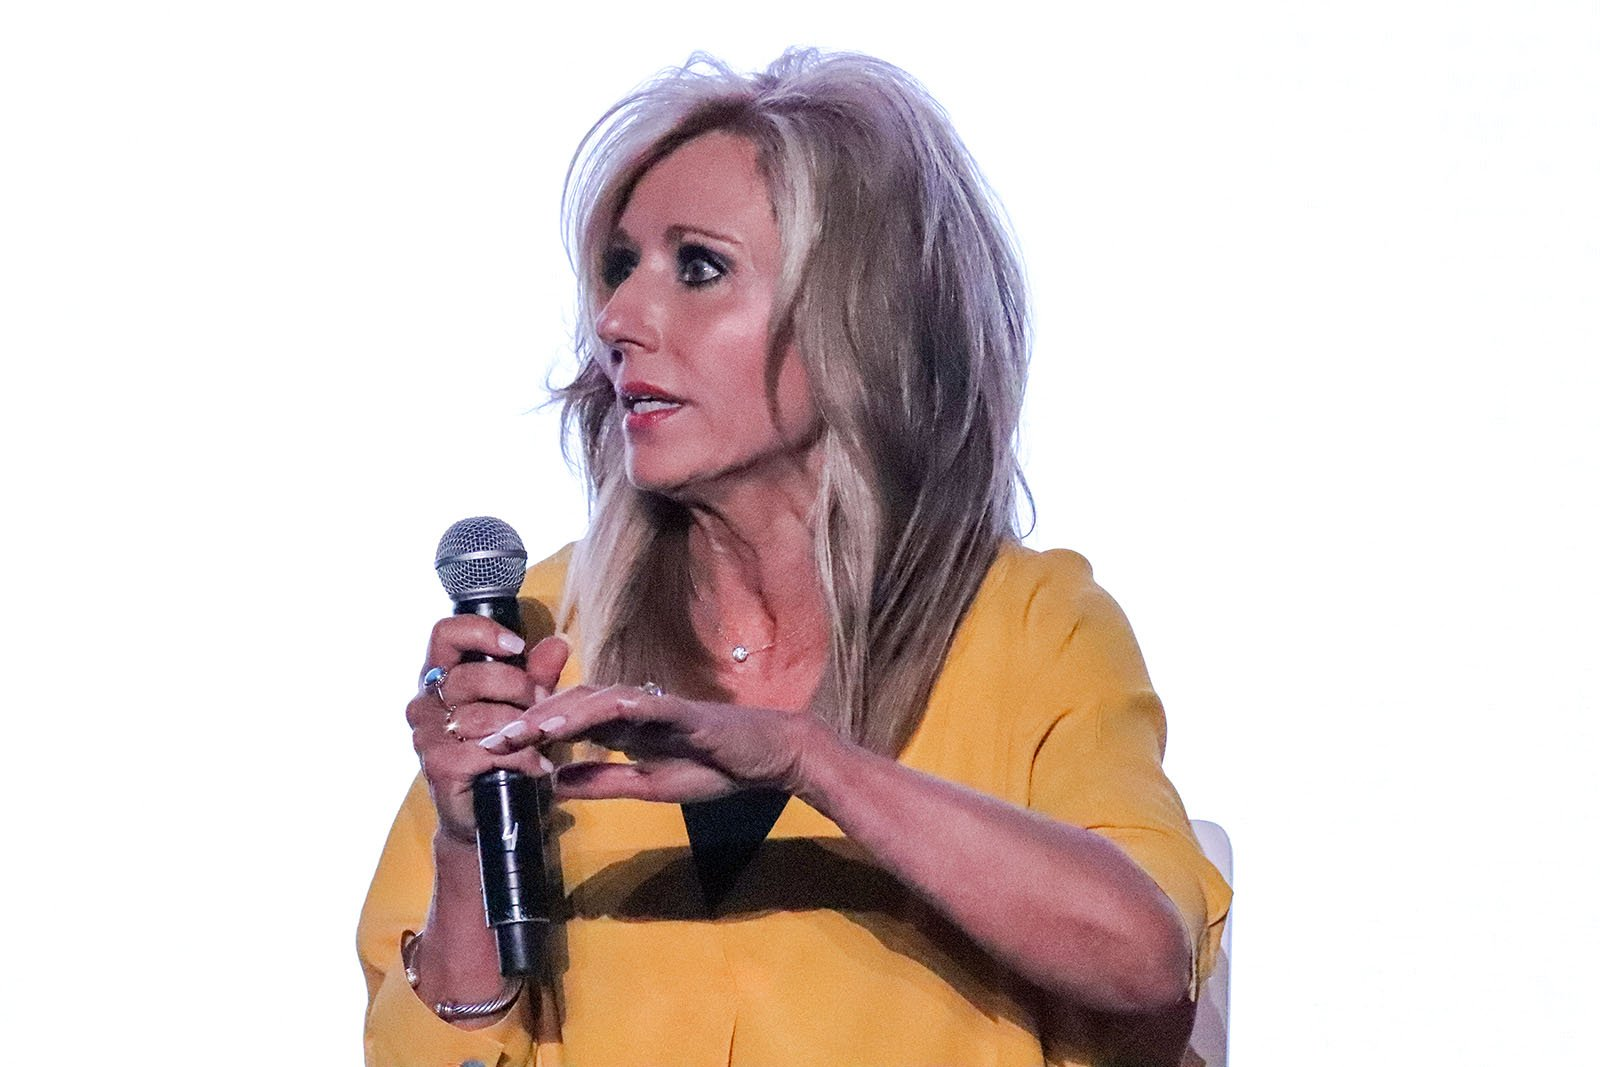 Author and speaker Beth Moore speaks during a panel on sexual abuse in the Southern Baptist Convention at the Birmingham-Jefferson Convention Complex in Birmingham, Alabama, on June 10, 2019. RNS photo by Adelle M. Banks